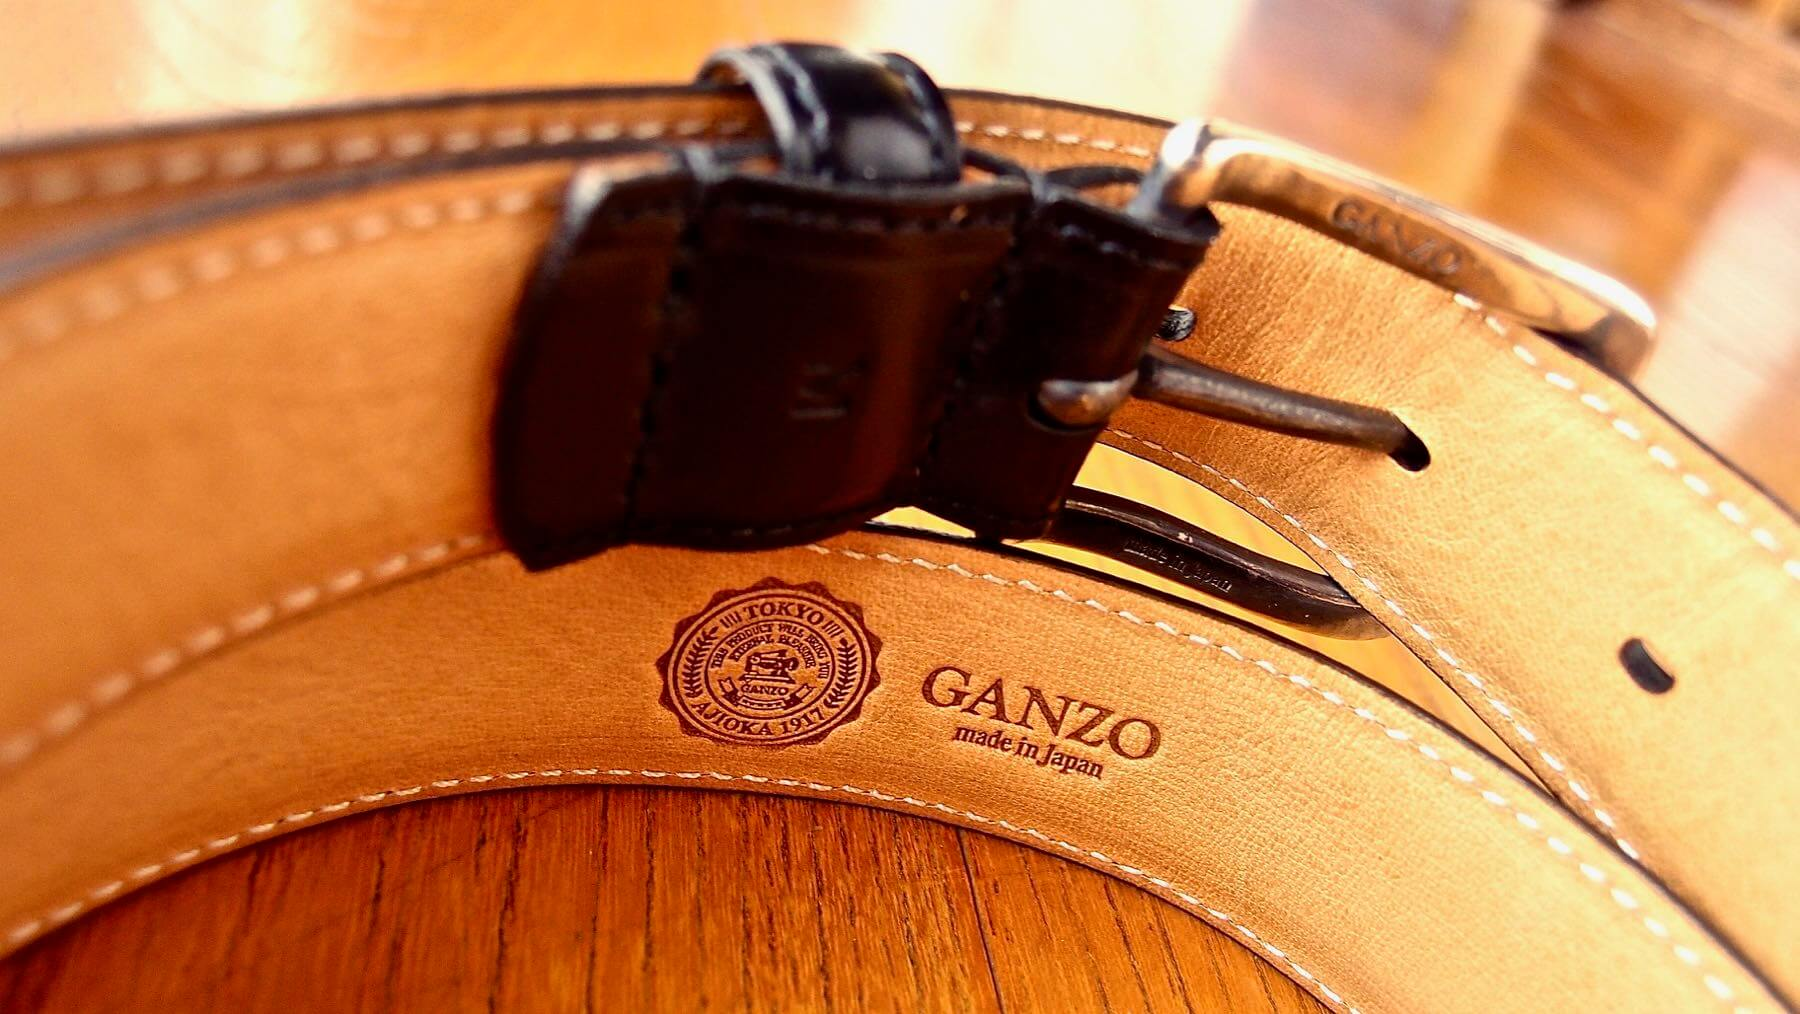 18 Ganzo leather belt BRIDLE